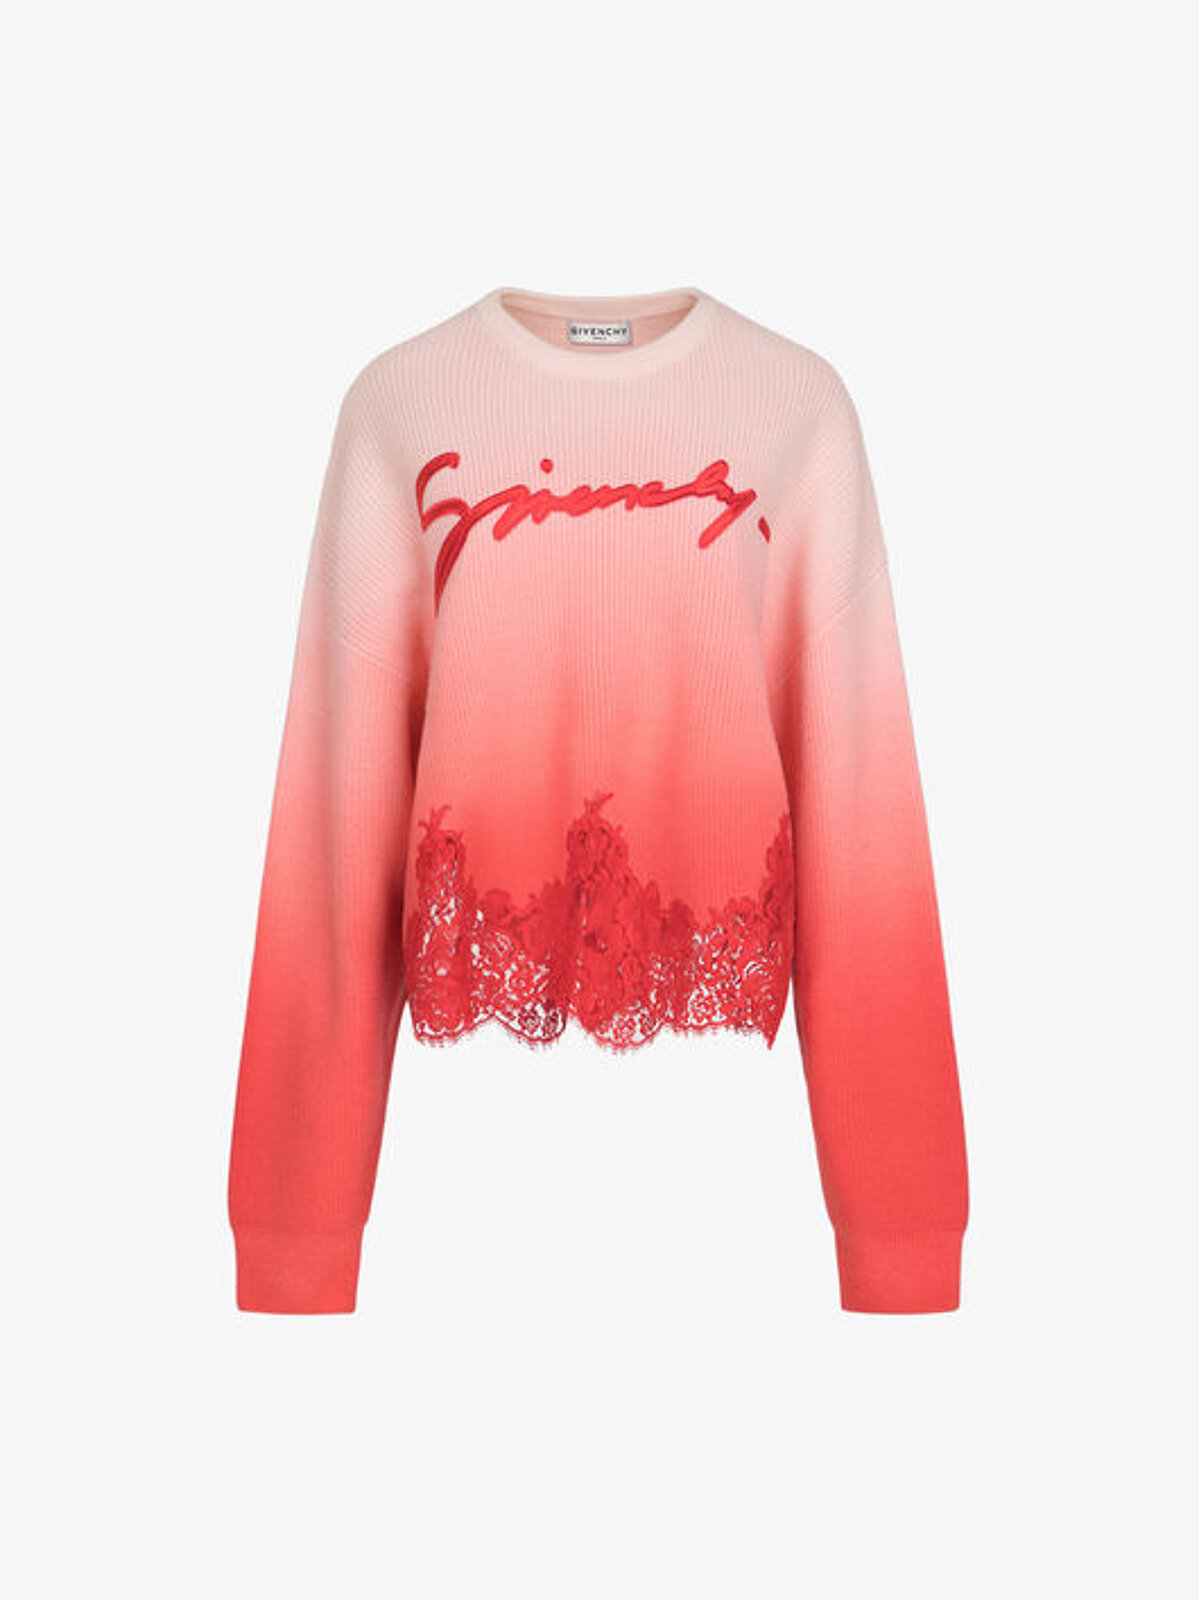 Givenchy Knitted Pullover With Lace - Givenchy